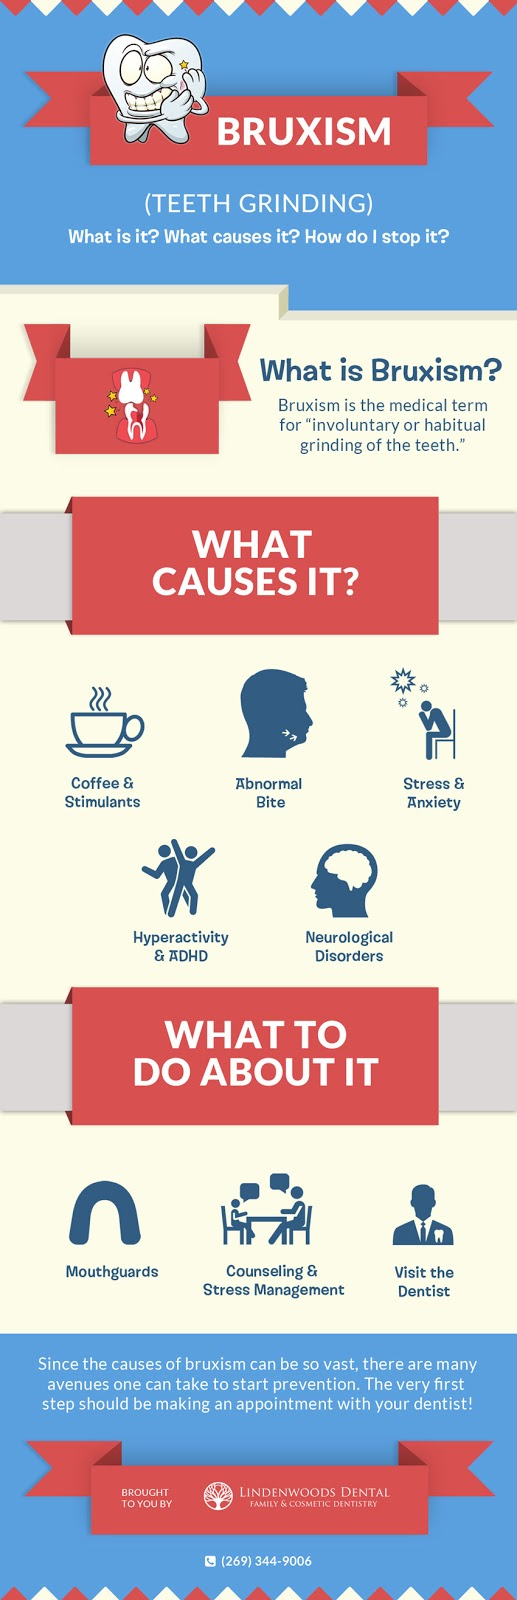 Infographic of the causes of bruxism and what to do about it